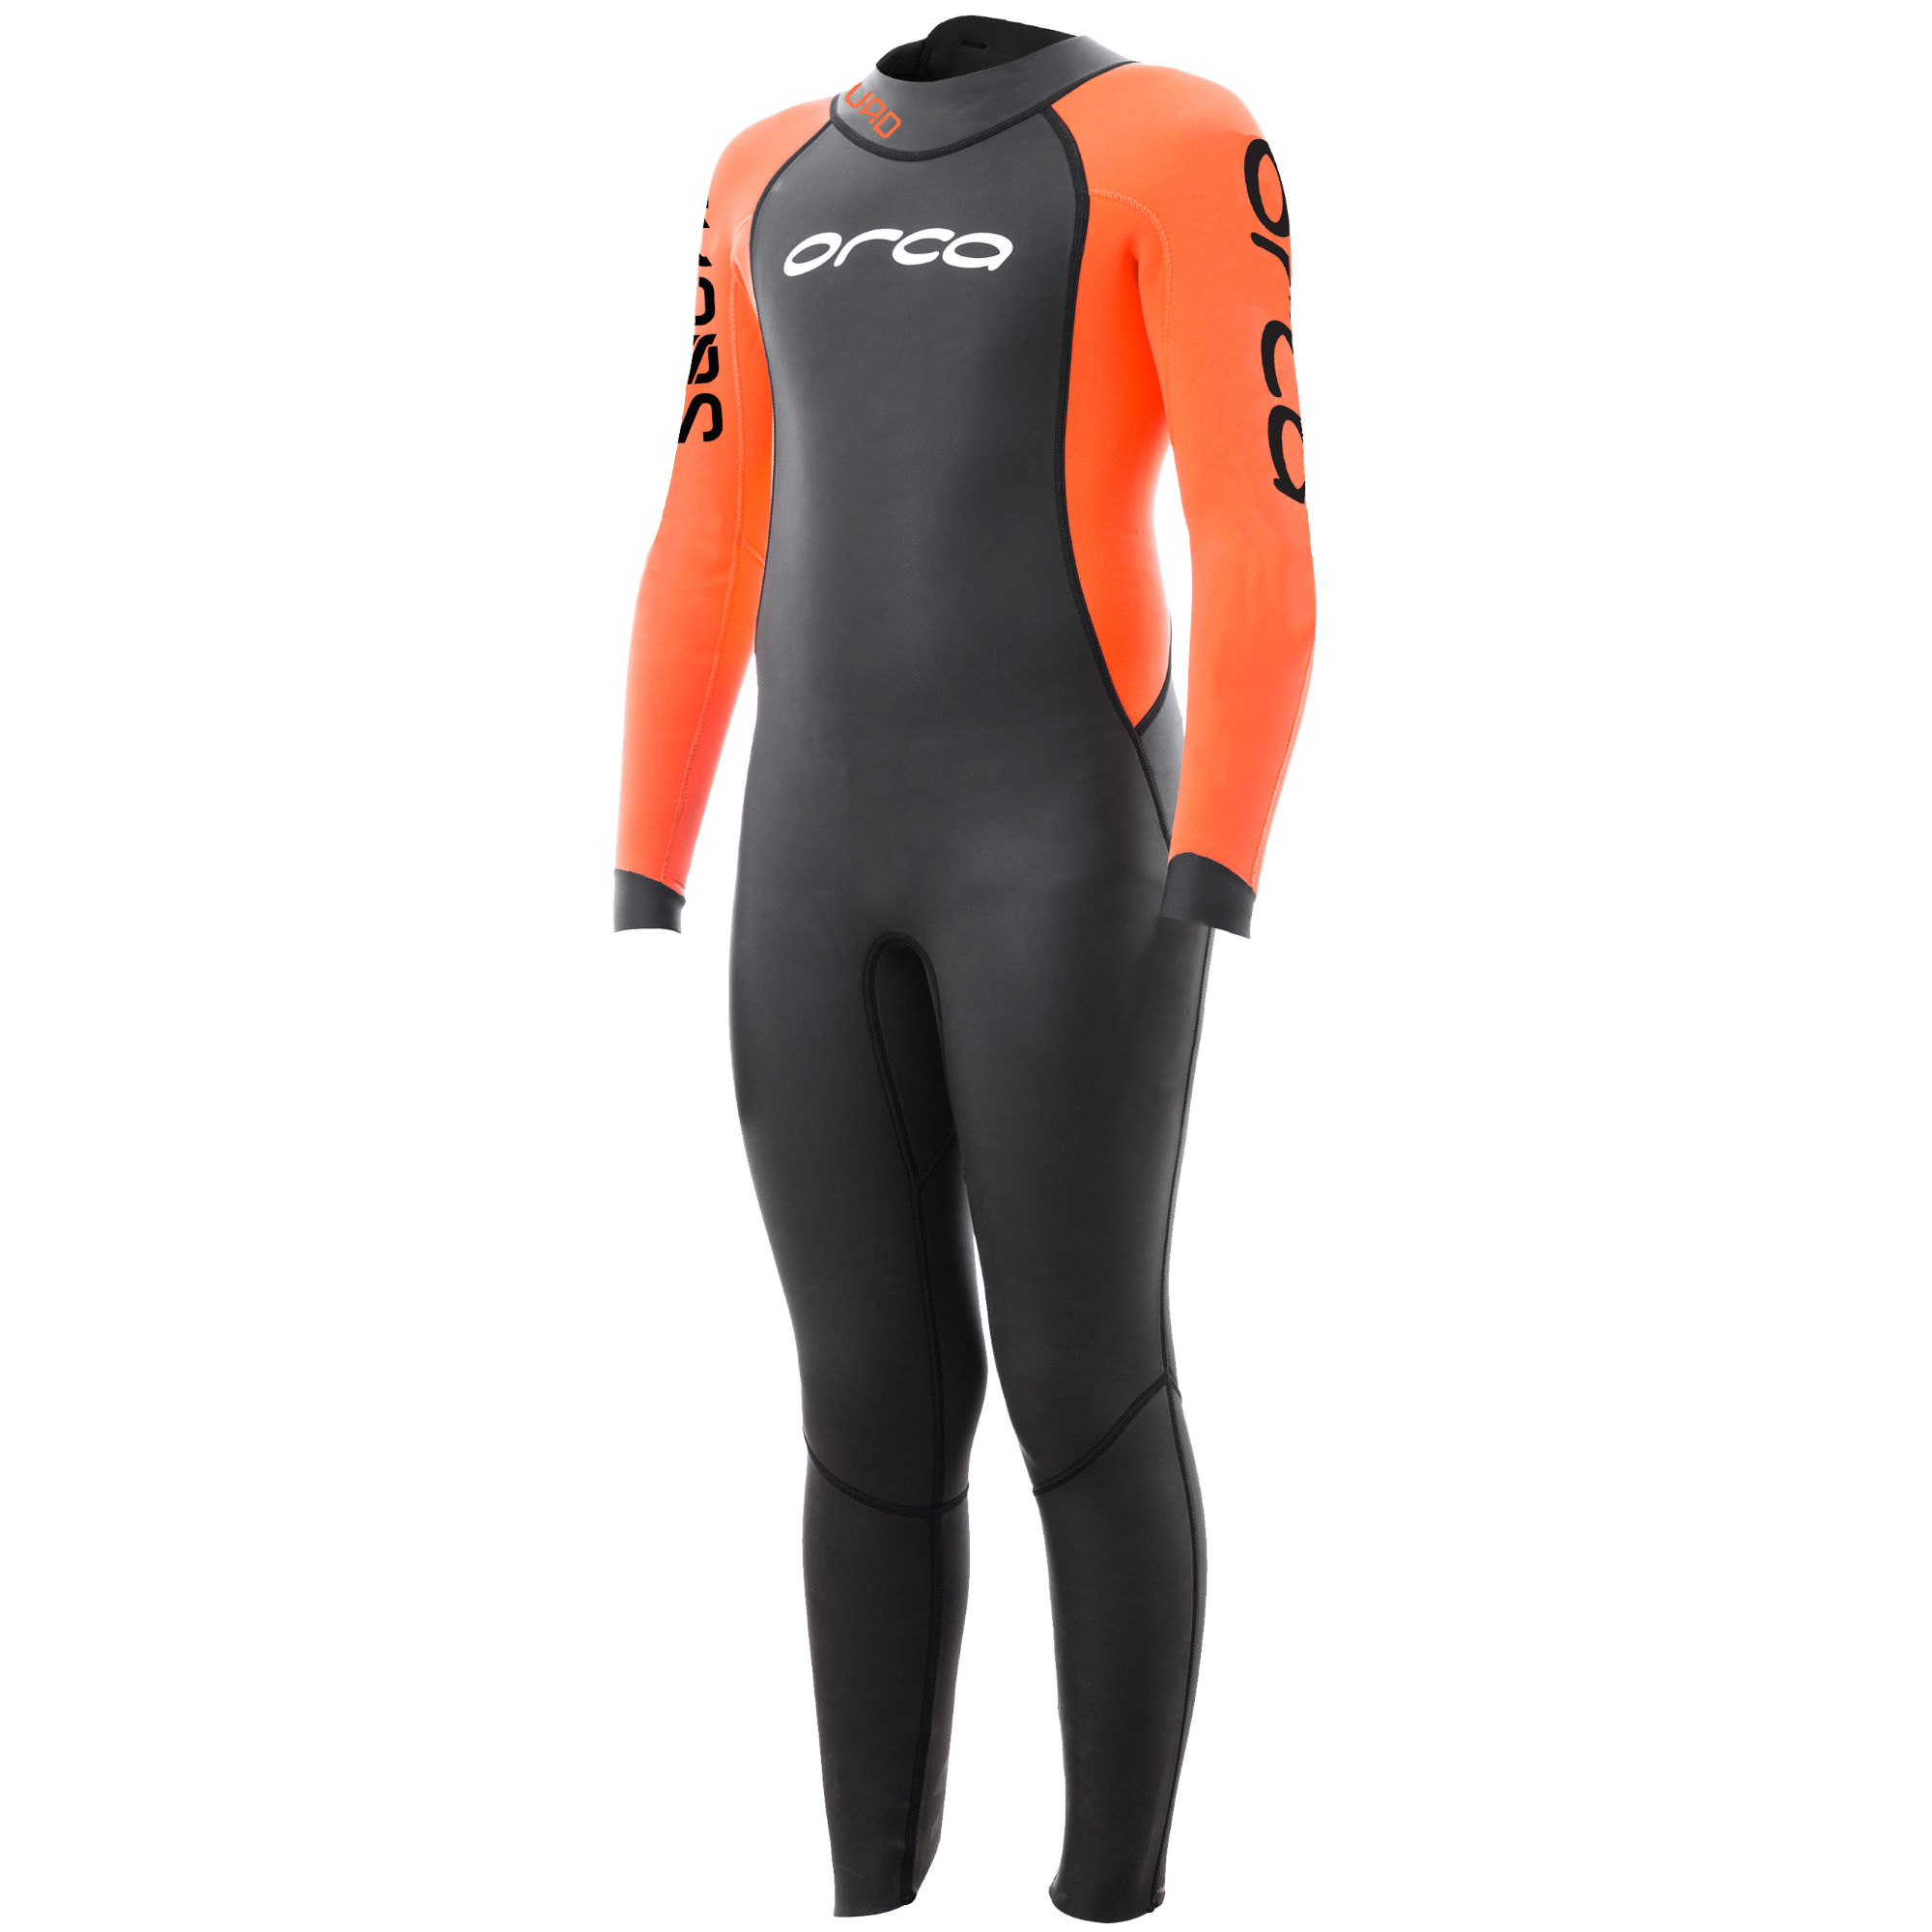 Wiggle Orca Kids Open Squad Wetsuit Wetsuits